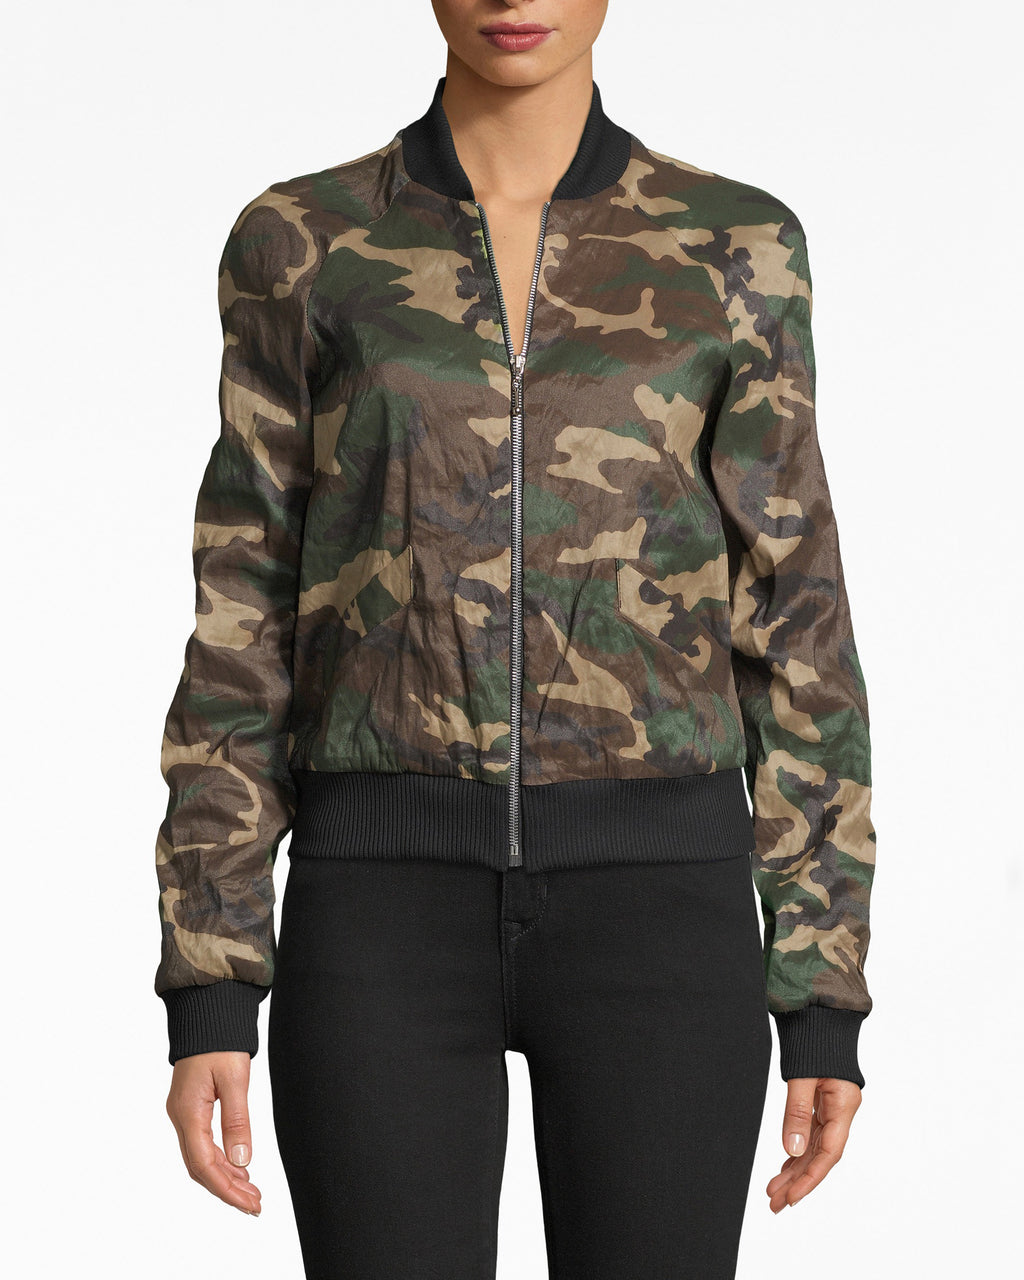 CF10290 - CAMOUFLAGE TECHNOMETAL BOMBER - outerwear - jackets - When Camo meets Street, we get this jacket. Our Techno Metal bomber is fitted with a little bit of room. The fabric is super breathable. Exposed front zipper for closure, fully lined.